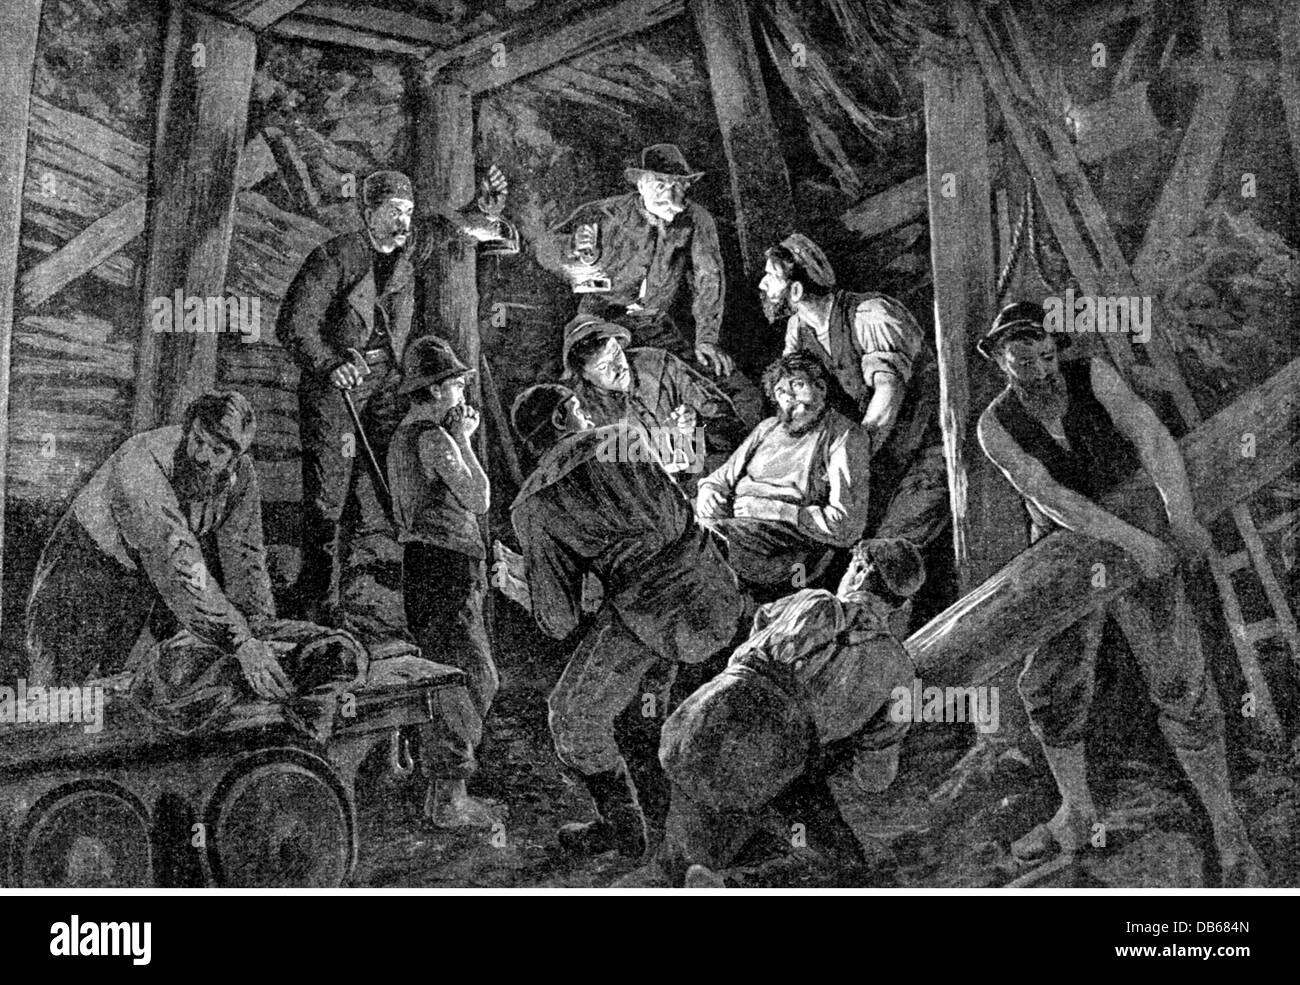 mining, disasters, mine disaster, break in of the ridges, wood engraving after painting by August von Heyden, Germany, - Stock Image